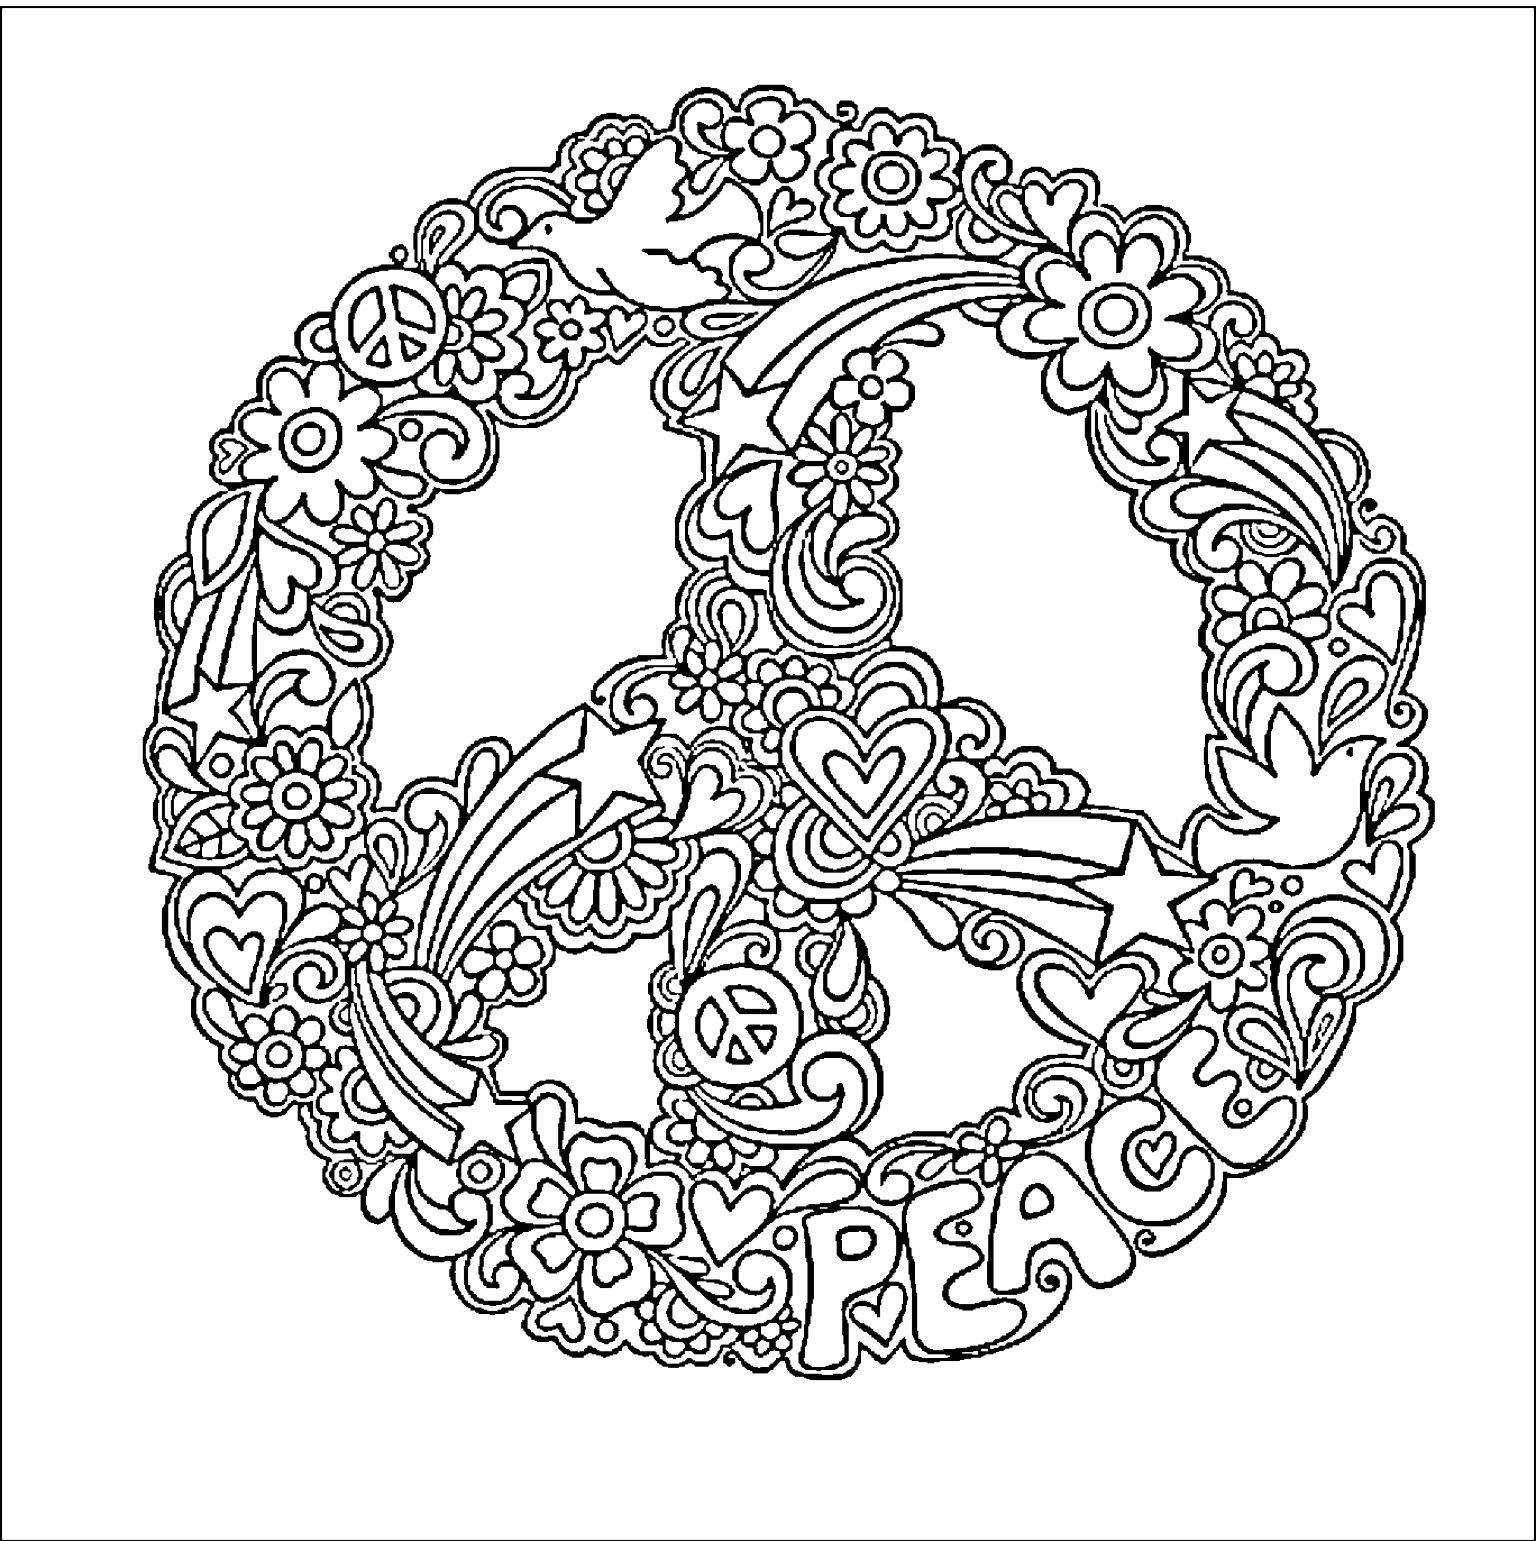 Hippie Coloring Pages Peace Signs Trippy Coloring Pages Mandala Coloring Pages Coloring Pages Free Coloring Pages